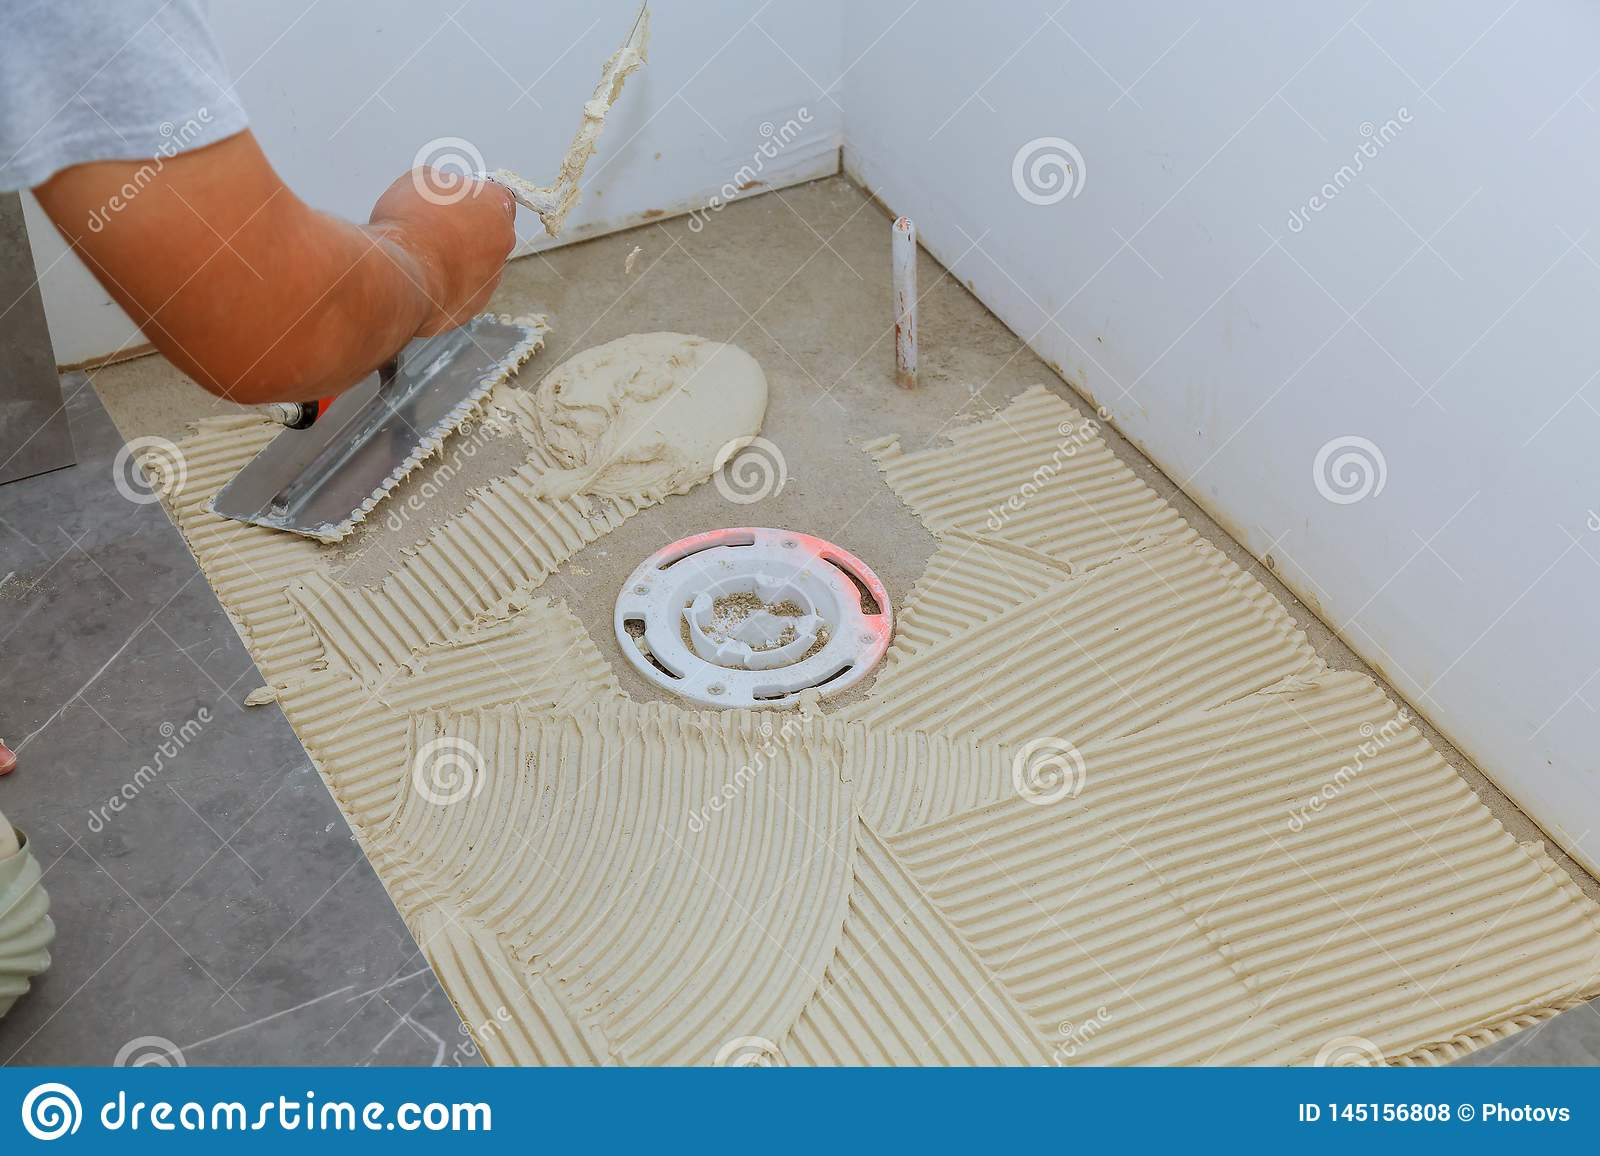 Spreading Wet Mortar Before Applying Tiles On Bathroom Floor Stock Photo Image Of Interior Hand 145156808